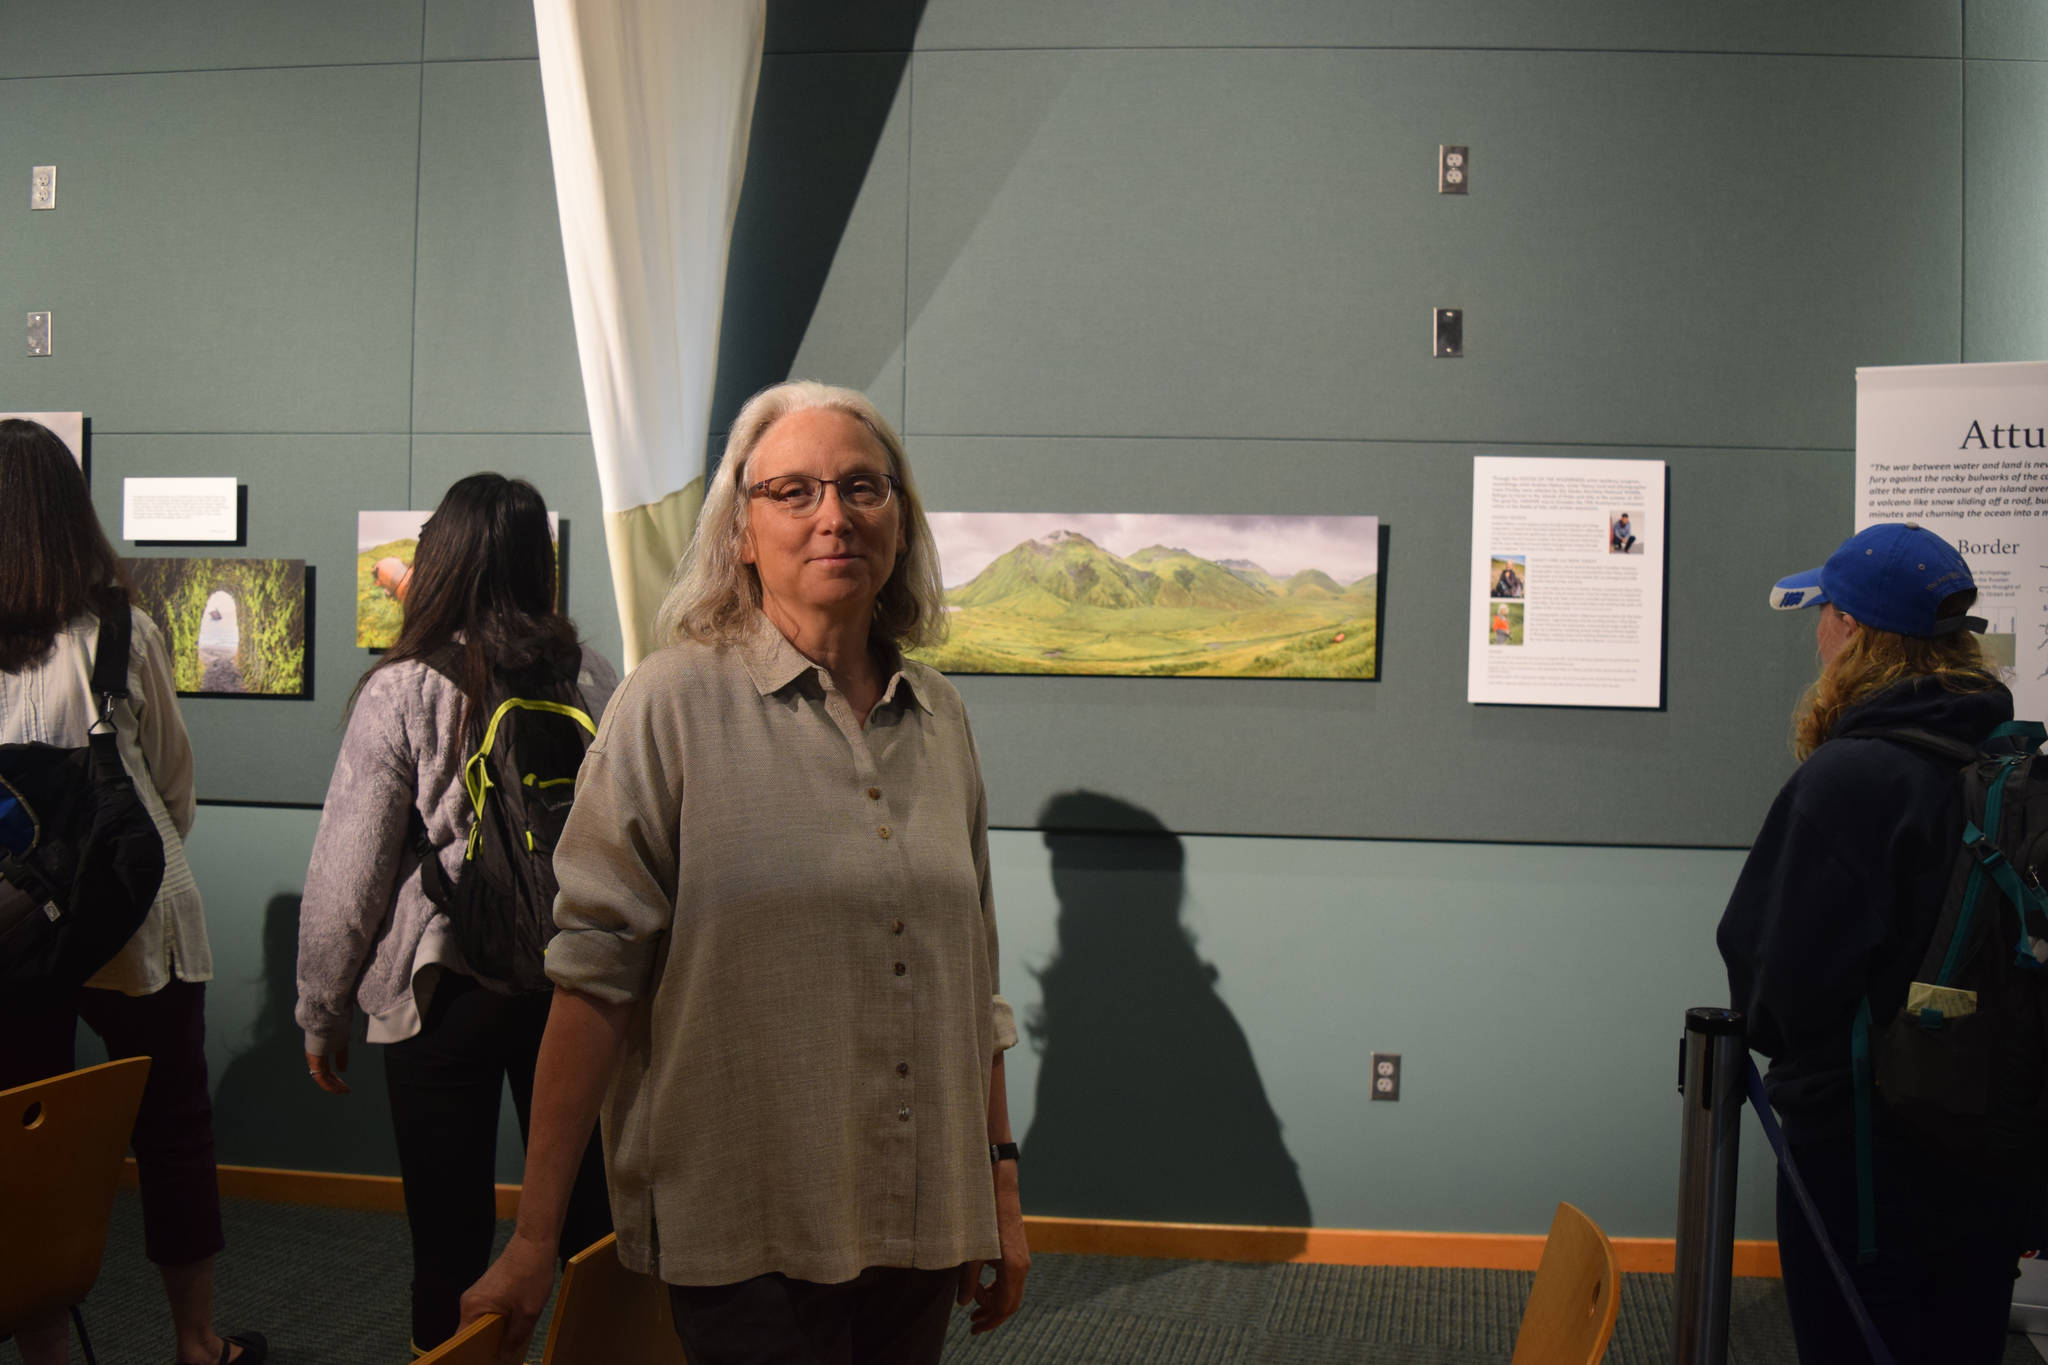 Nancy Lord at the Reflections of Attu art show on Friday, July 6, 2018 at Islands and Oceans Visitor Center in Homer, Alaska. (Photo by Jennifer Tarnacki)